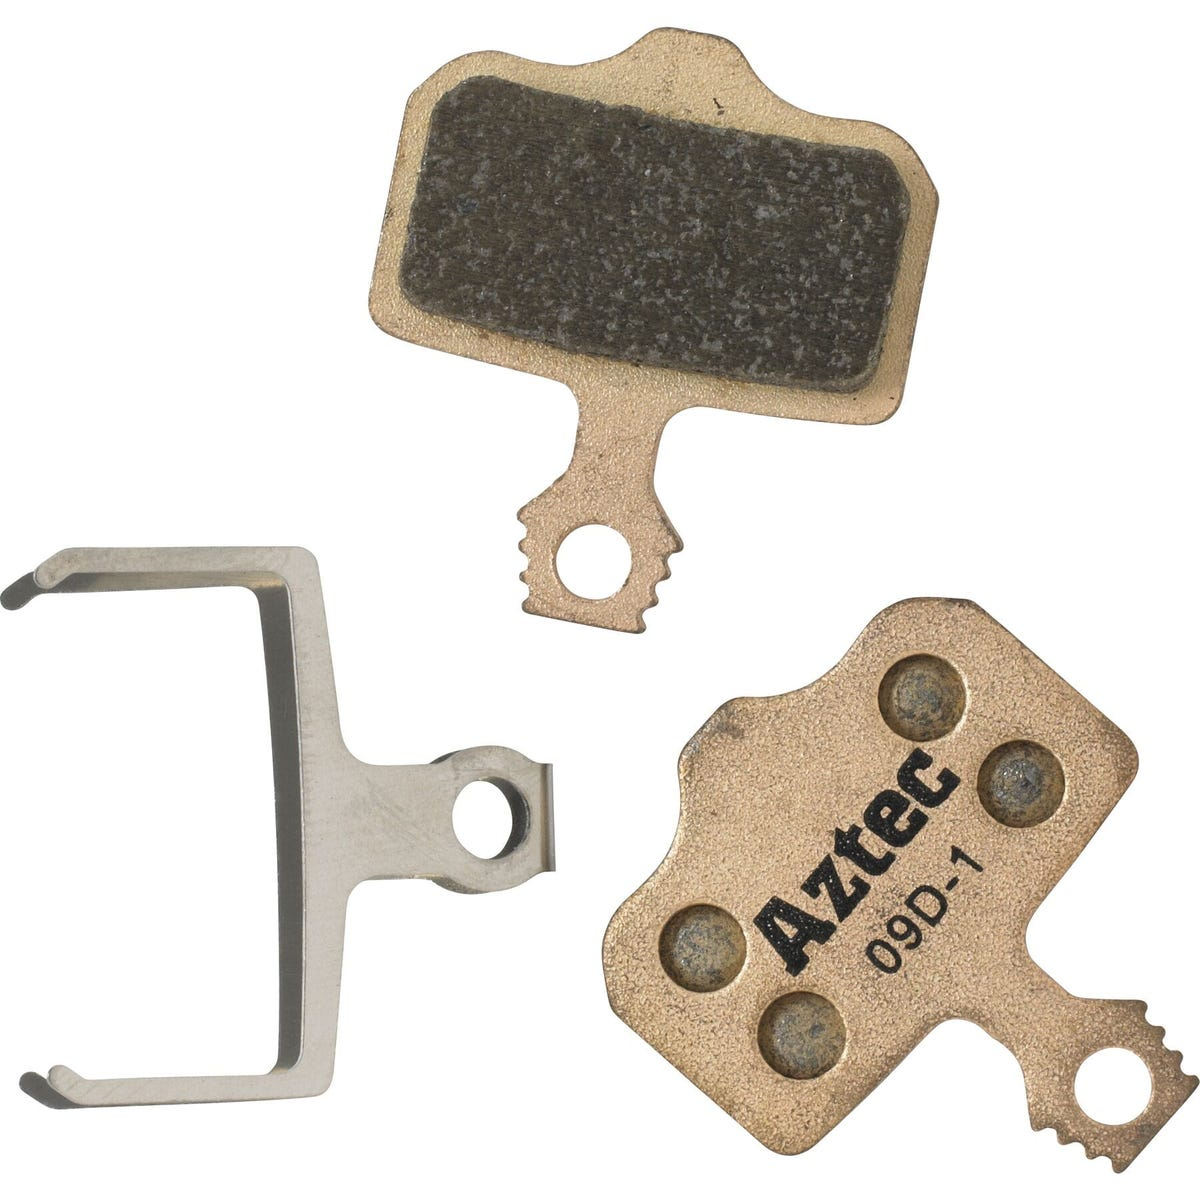 Aztec Sintered disc brake pads for Avid Elixir